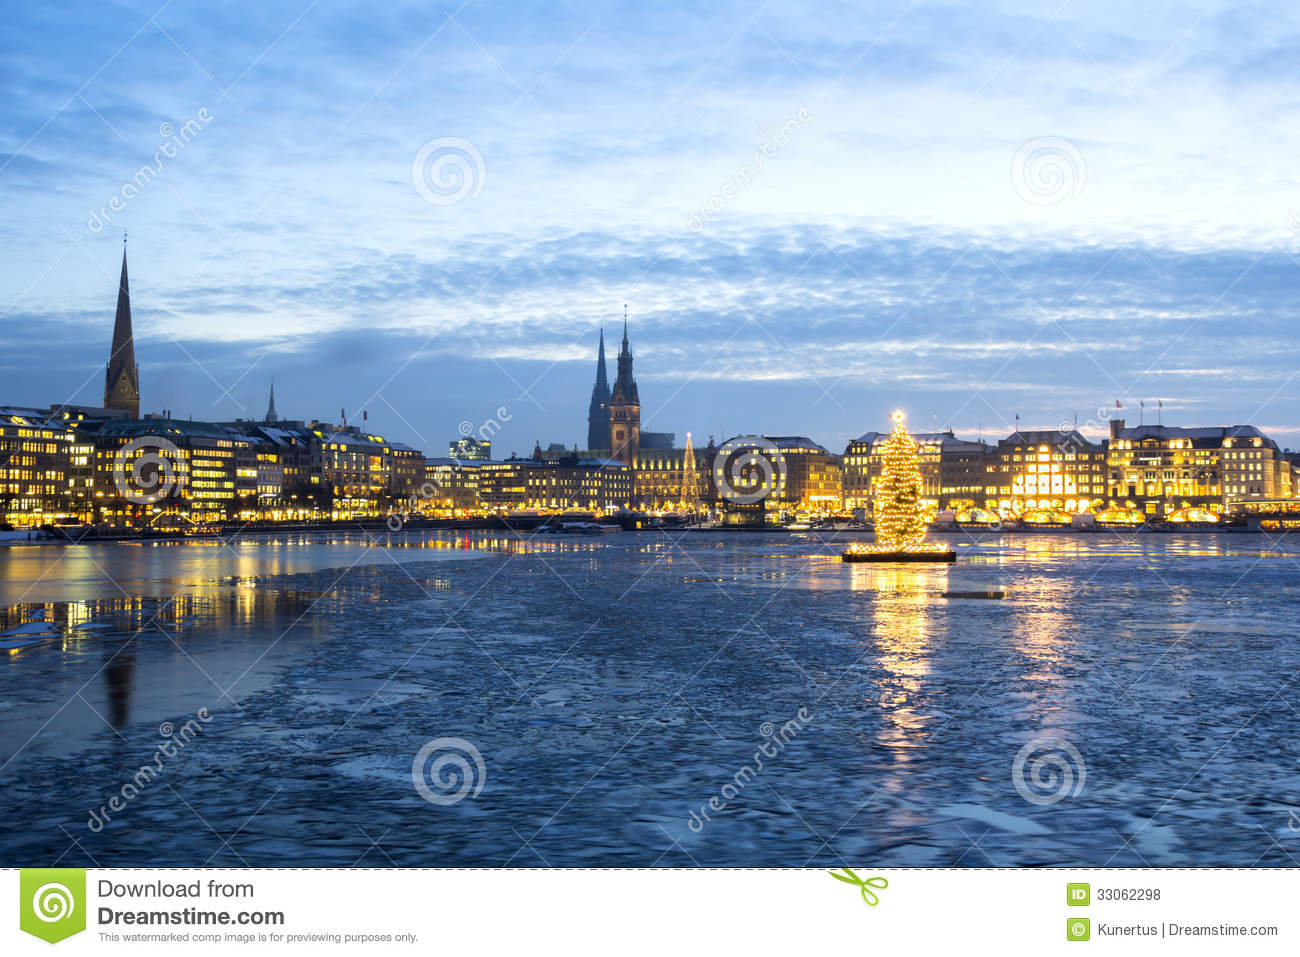 hamburg alster see am weihnachten stockfoto bild von. Black Bedroom Furniture Sets. Home Design Ideas